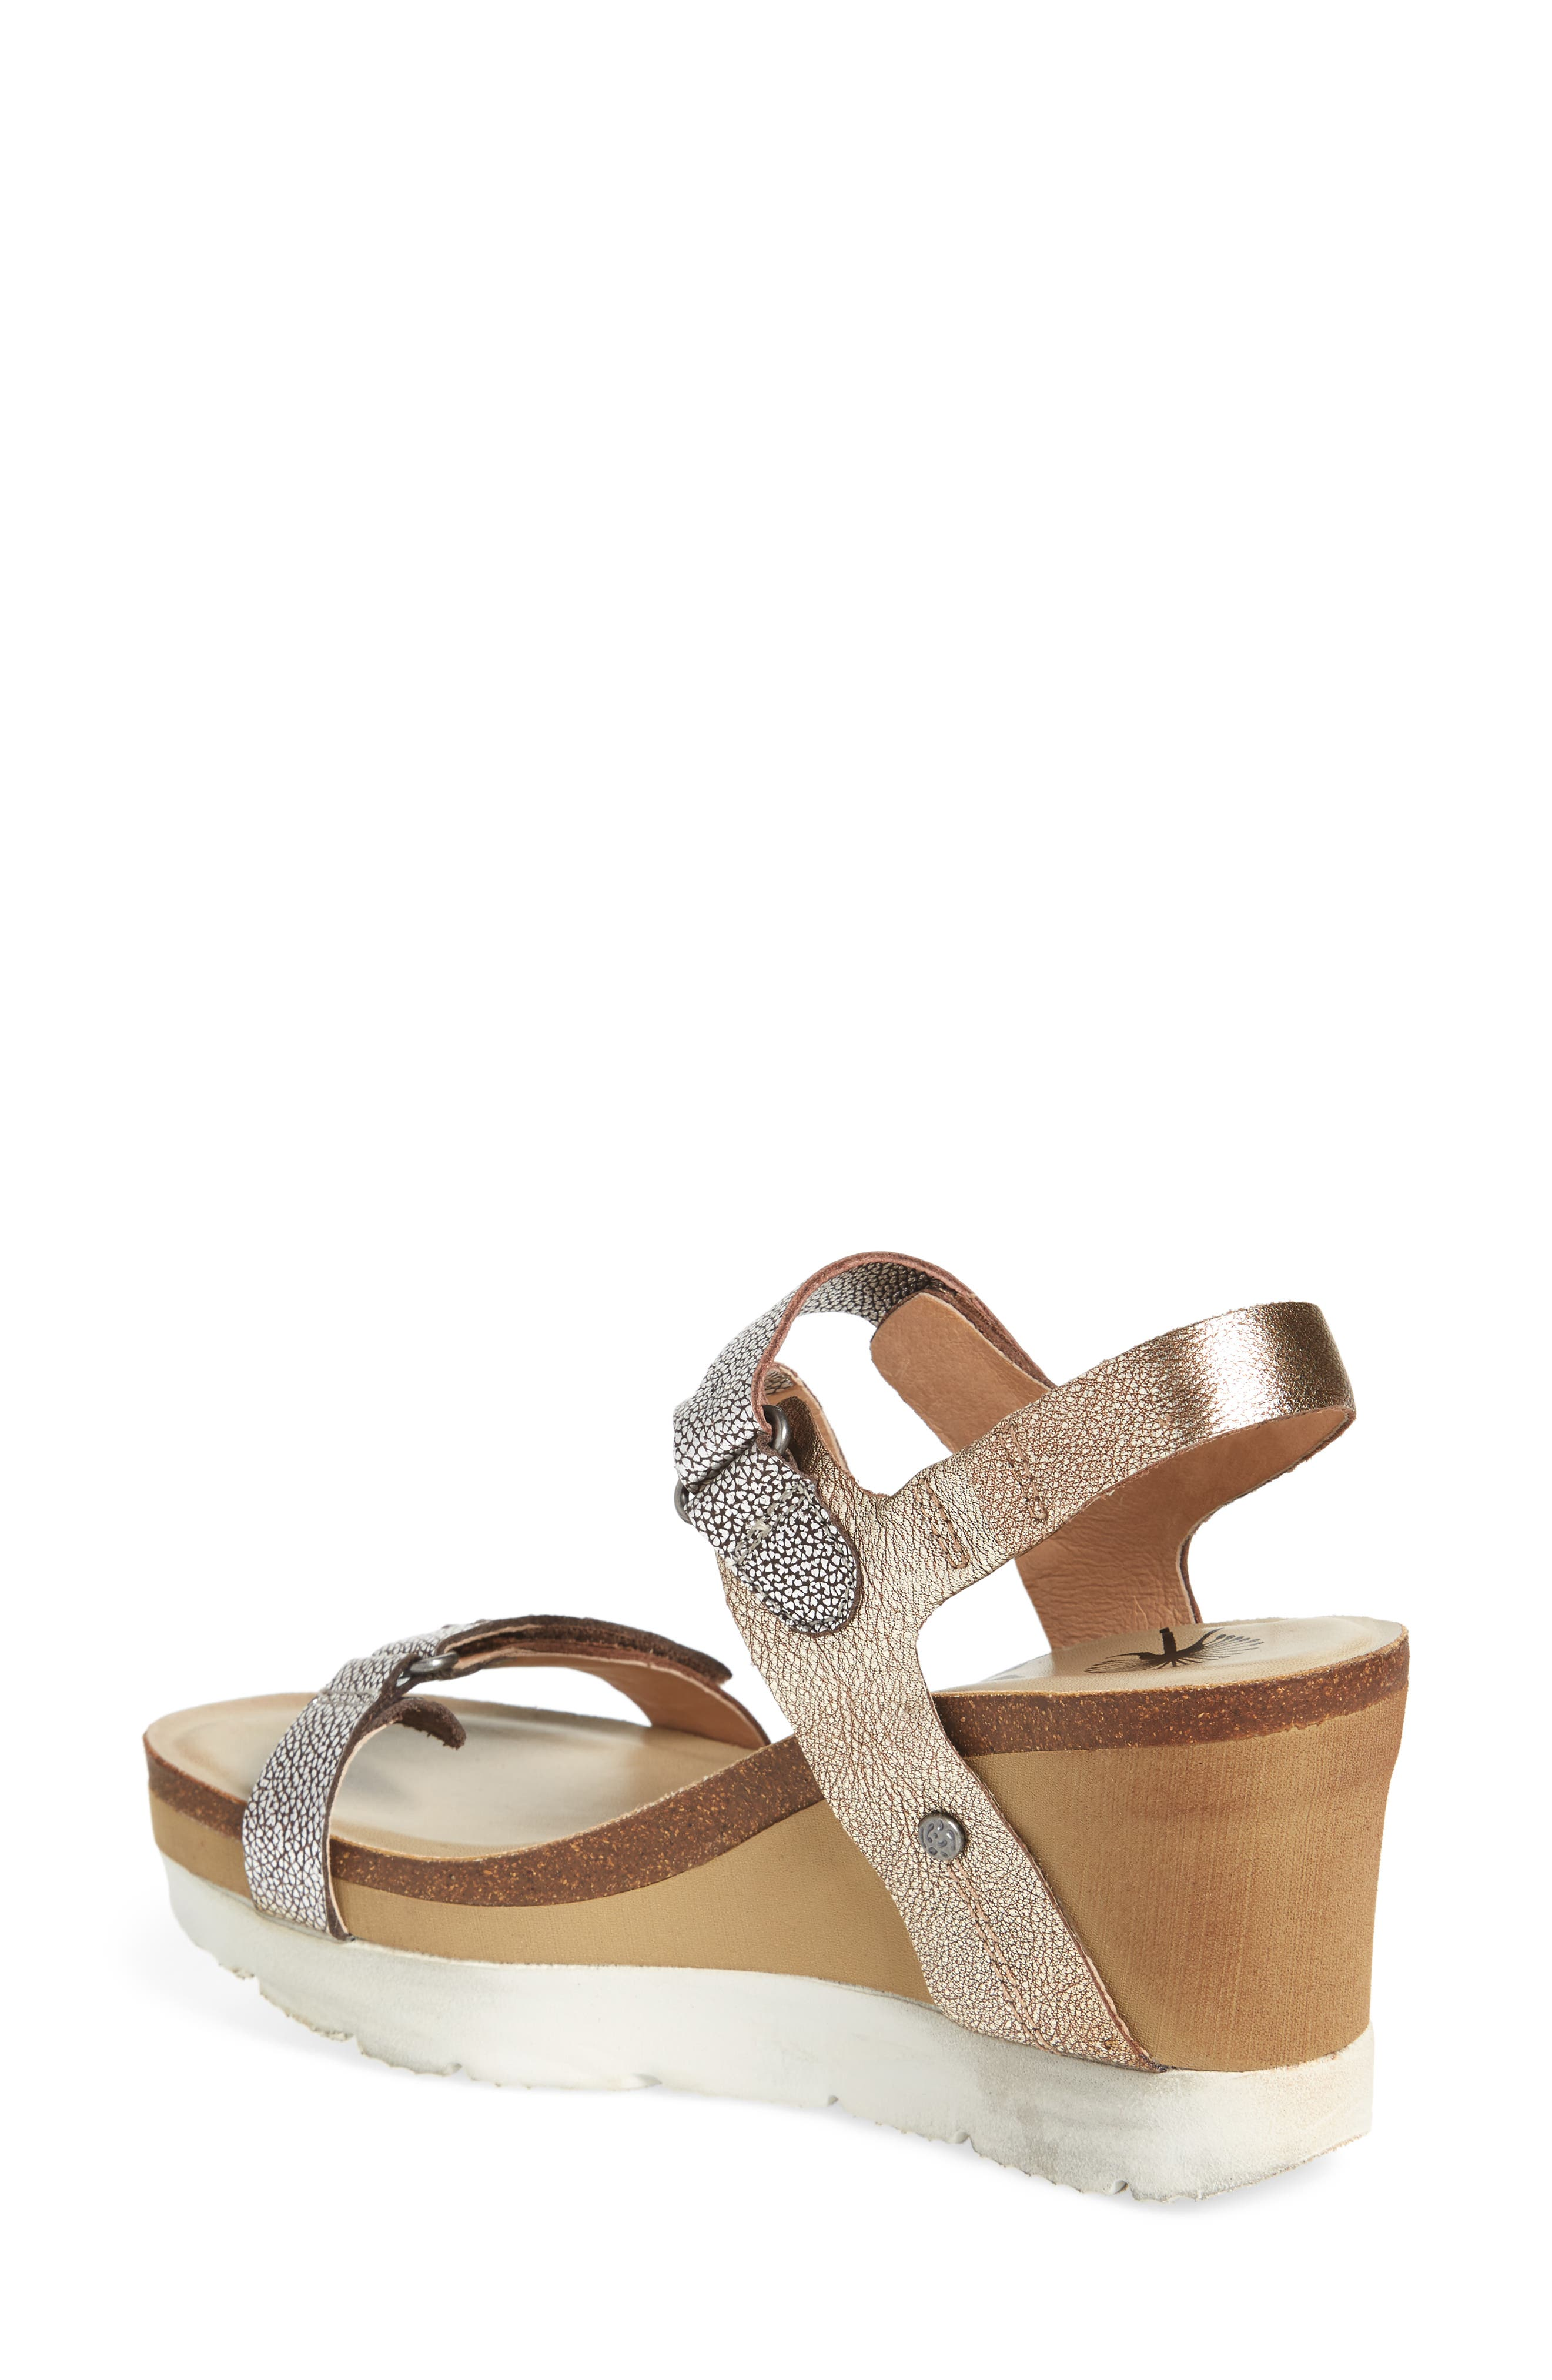 Wavey Wedge Sandal,                             Alternate thumbnail 2, color,                             Gold Leather